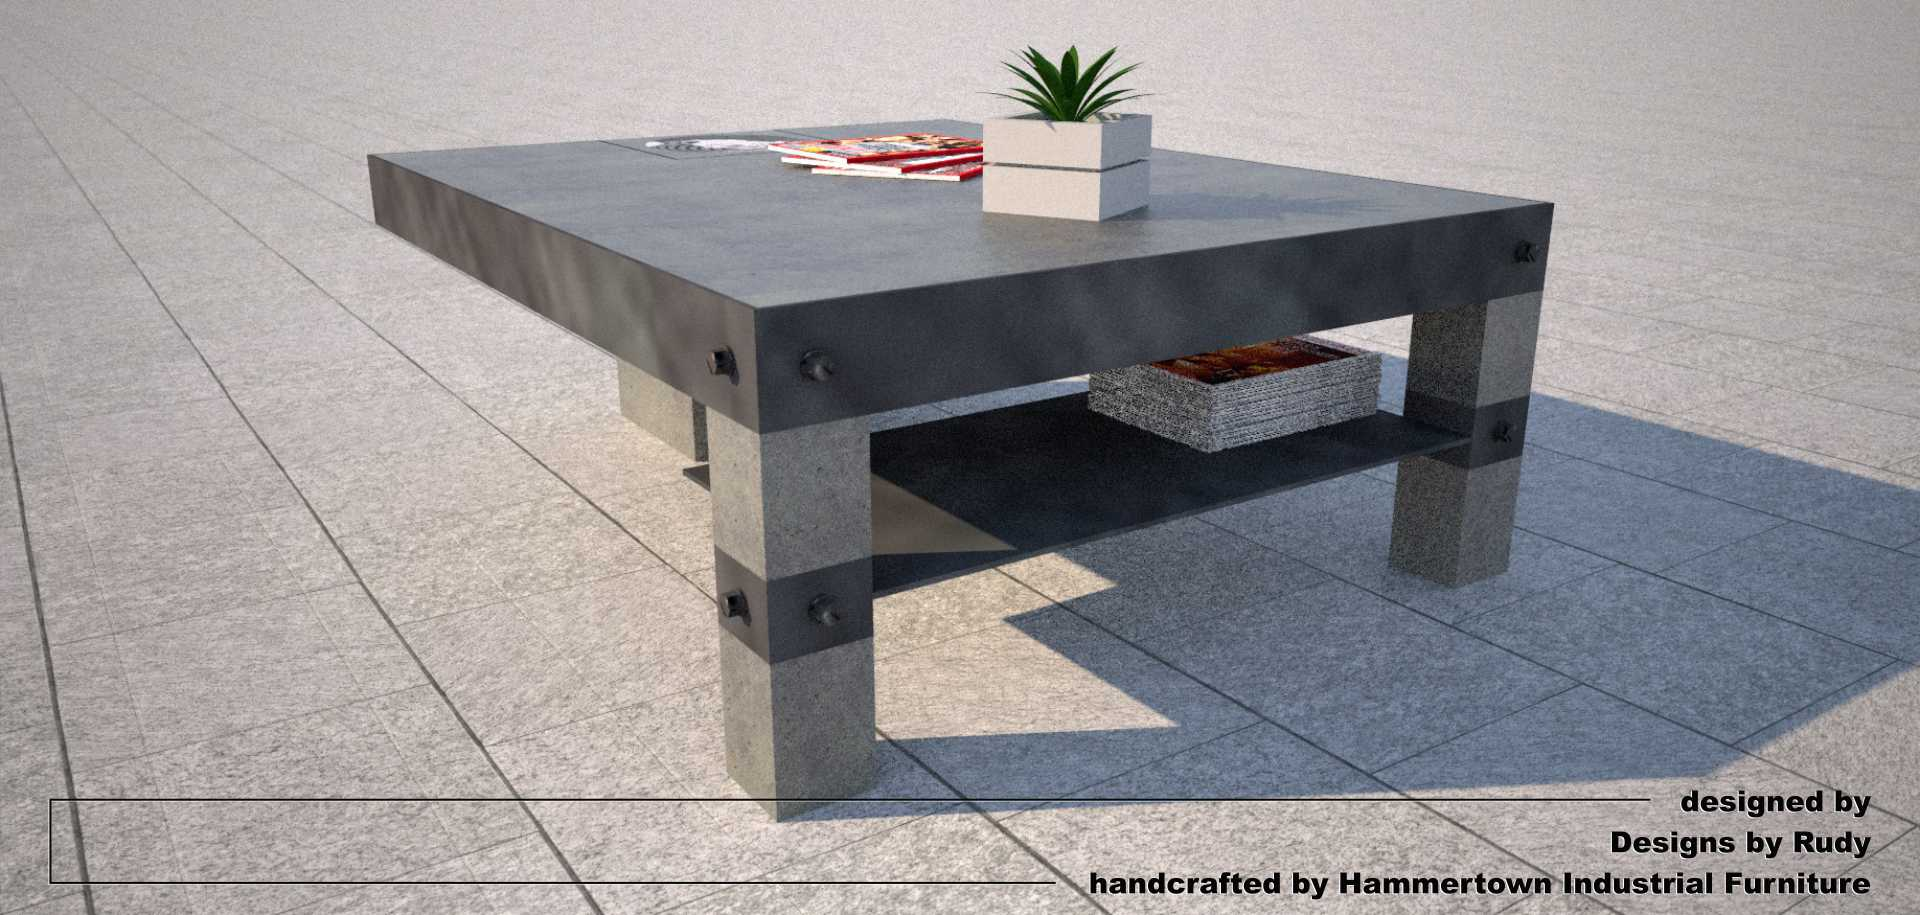 NAC coffee table, designed by Designs by Rudy, rear view